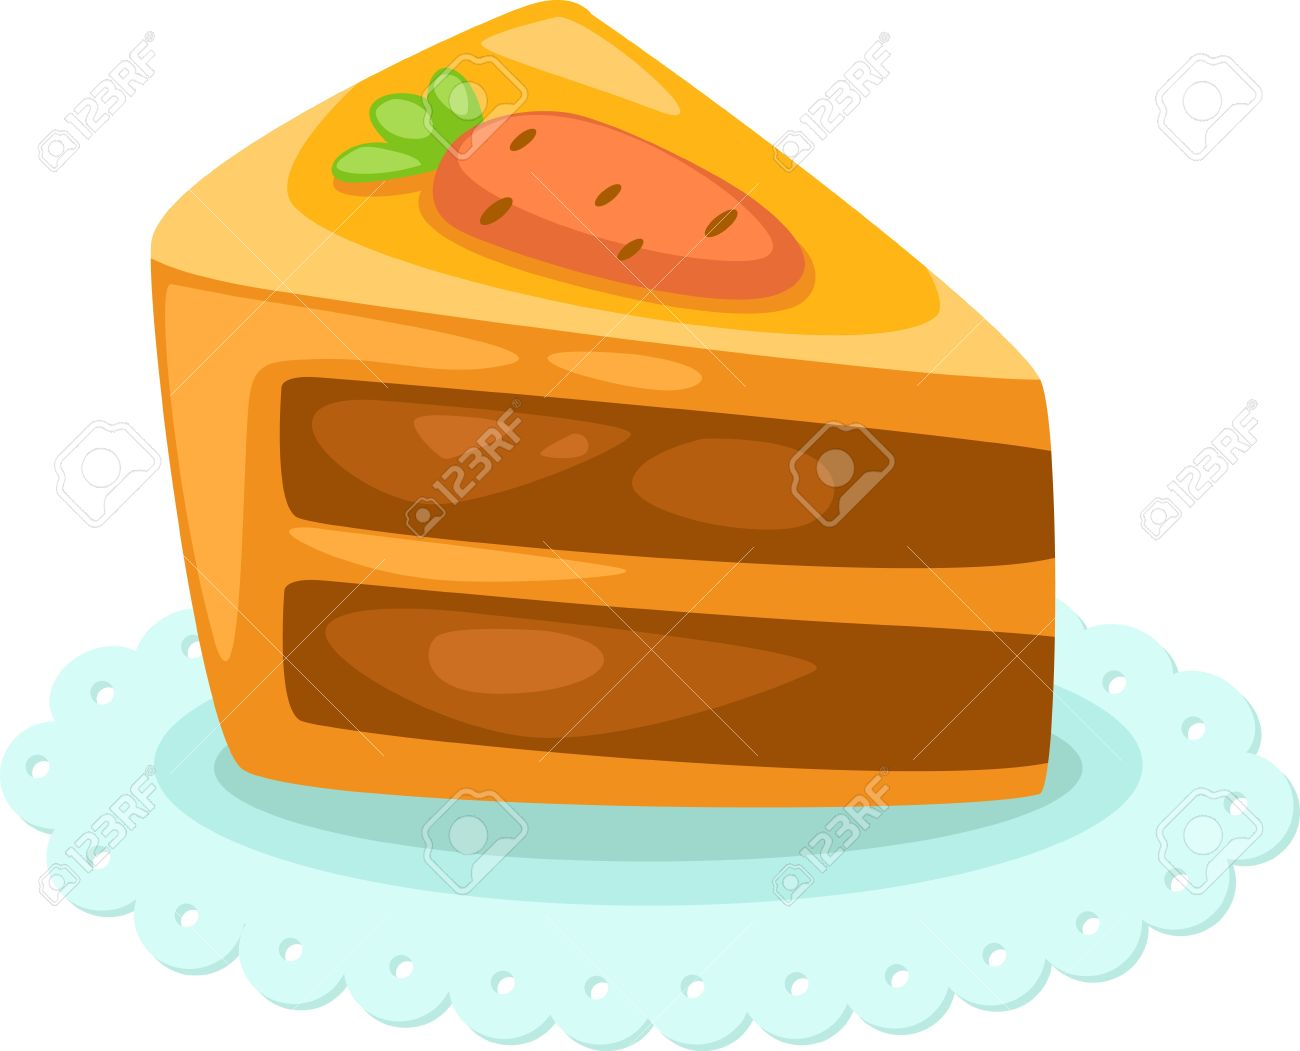 cake vector illustration Stock Vector - 15454357